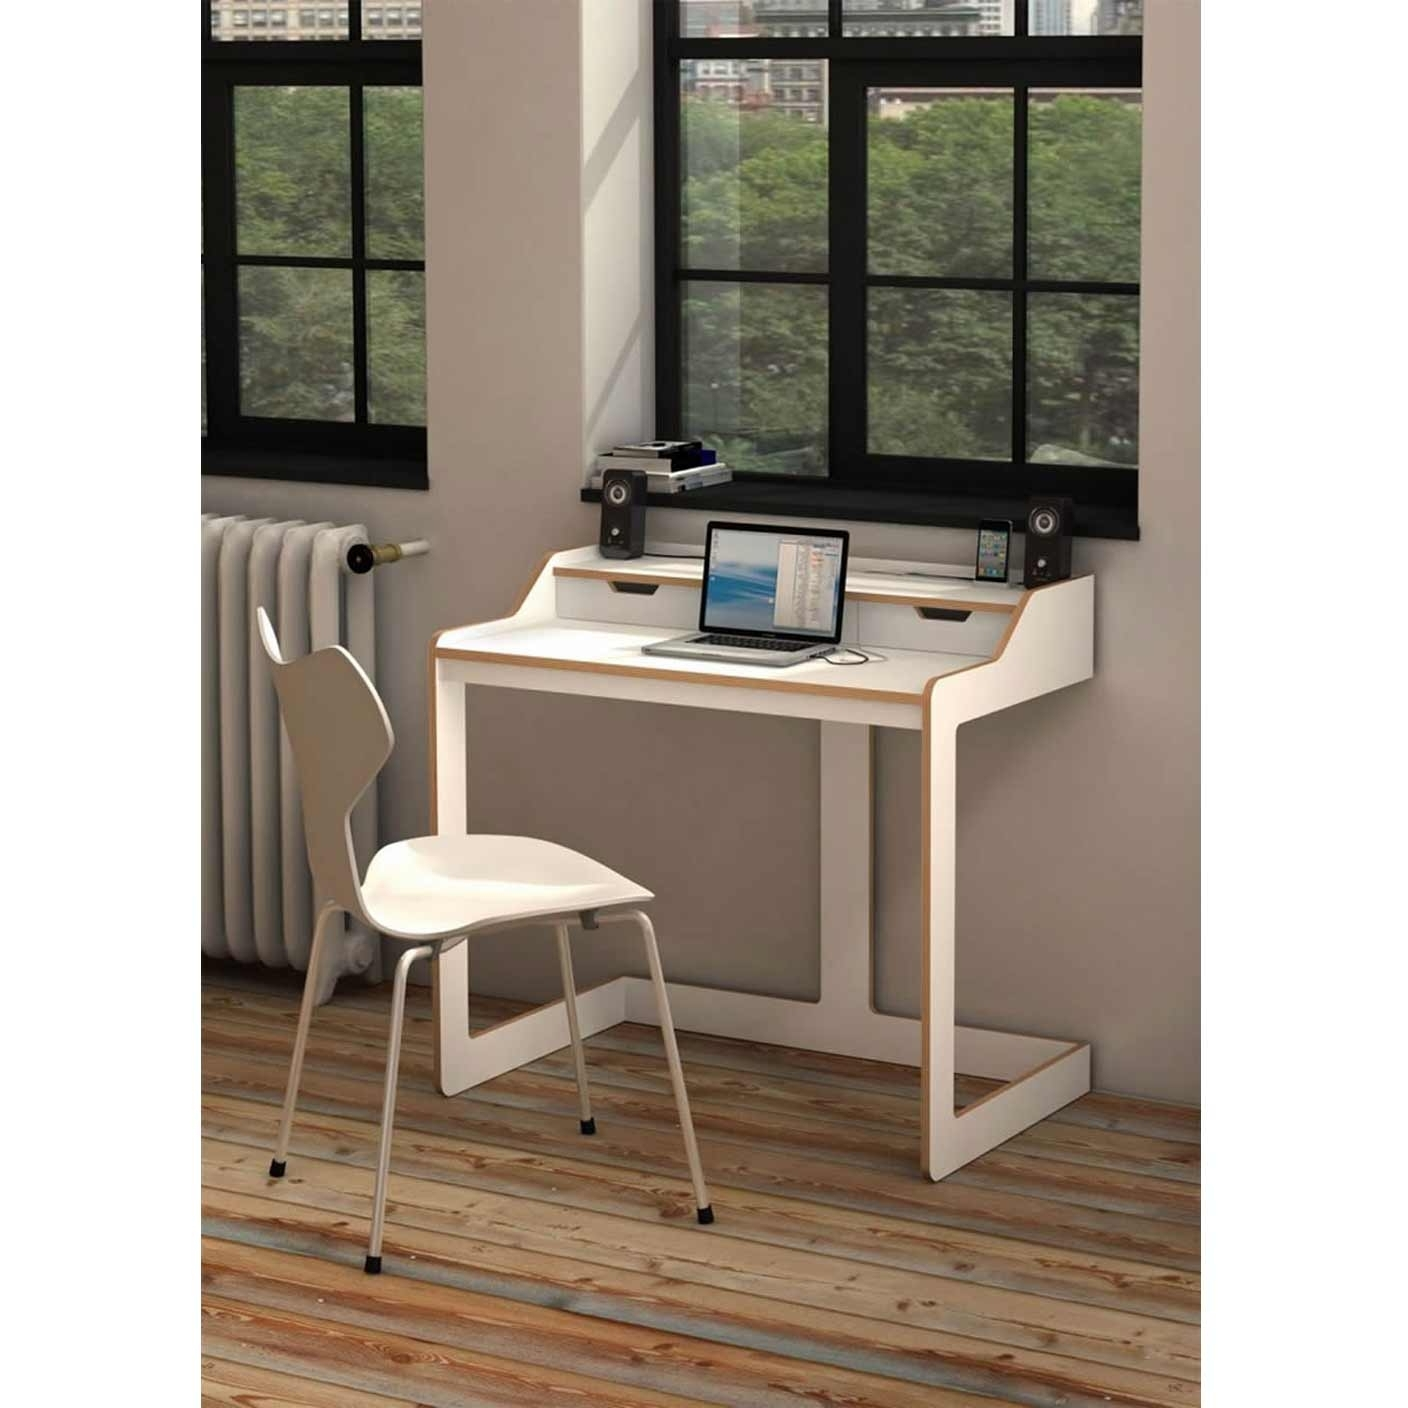 2018 Computer Desks For Small Rooms Intended For Laptop Computer Desks For Small Spaces – Amys Office (View 3 of 20)